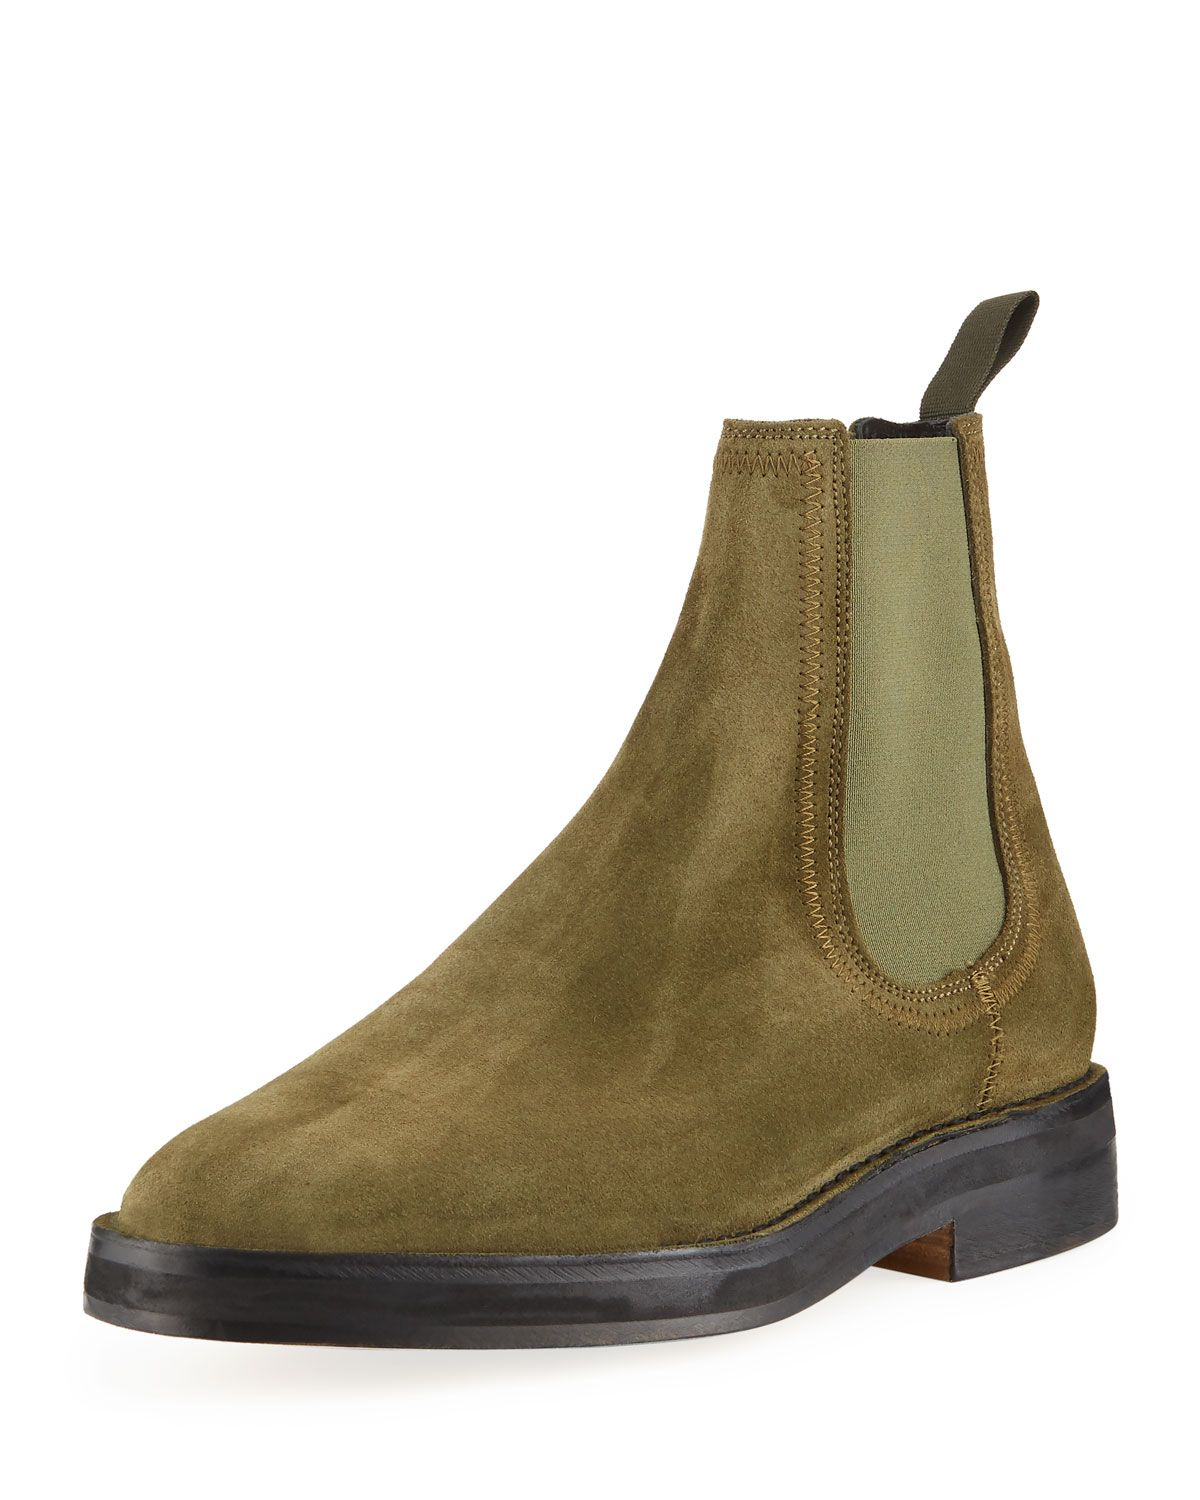 9bc927d0bf6 YEEZY TEEZY SUEDE CHELSEA BOOT